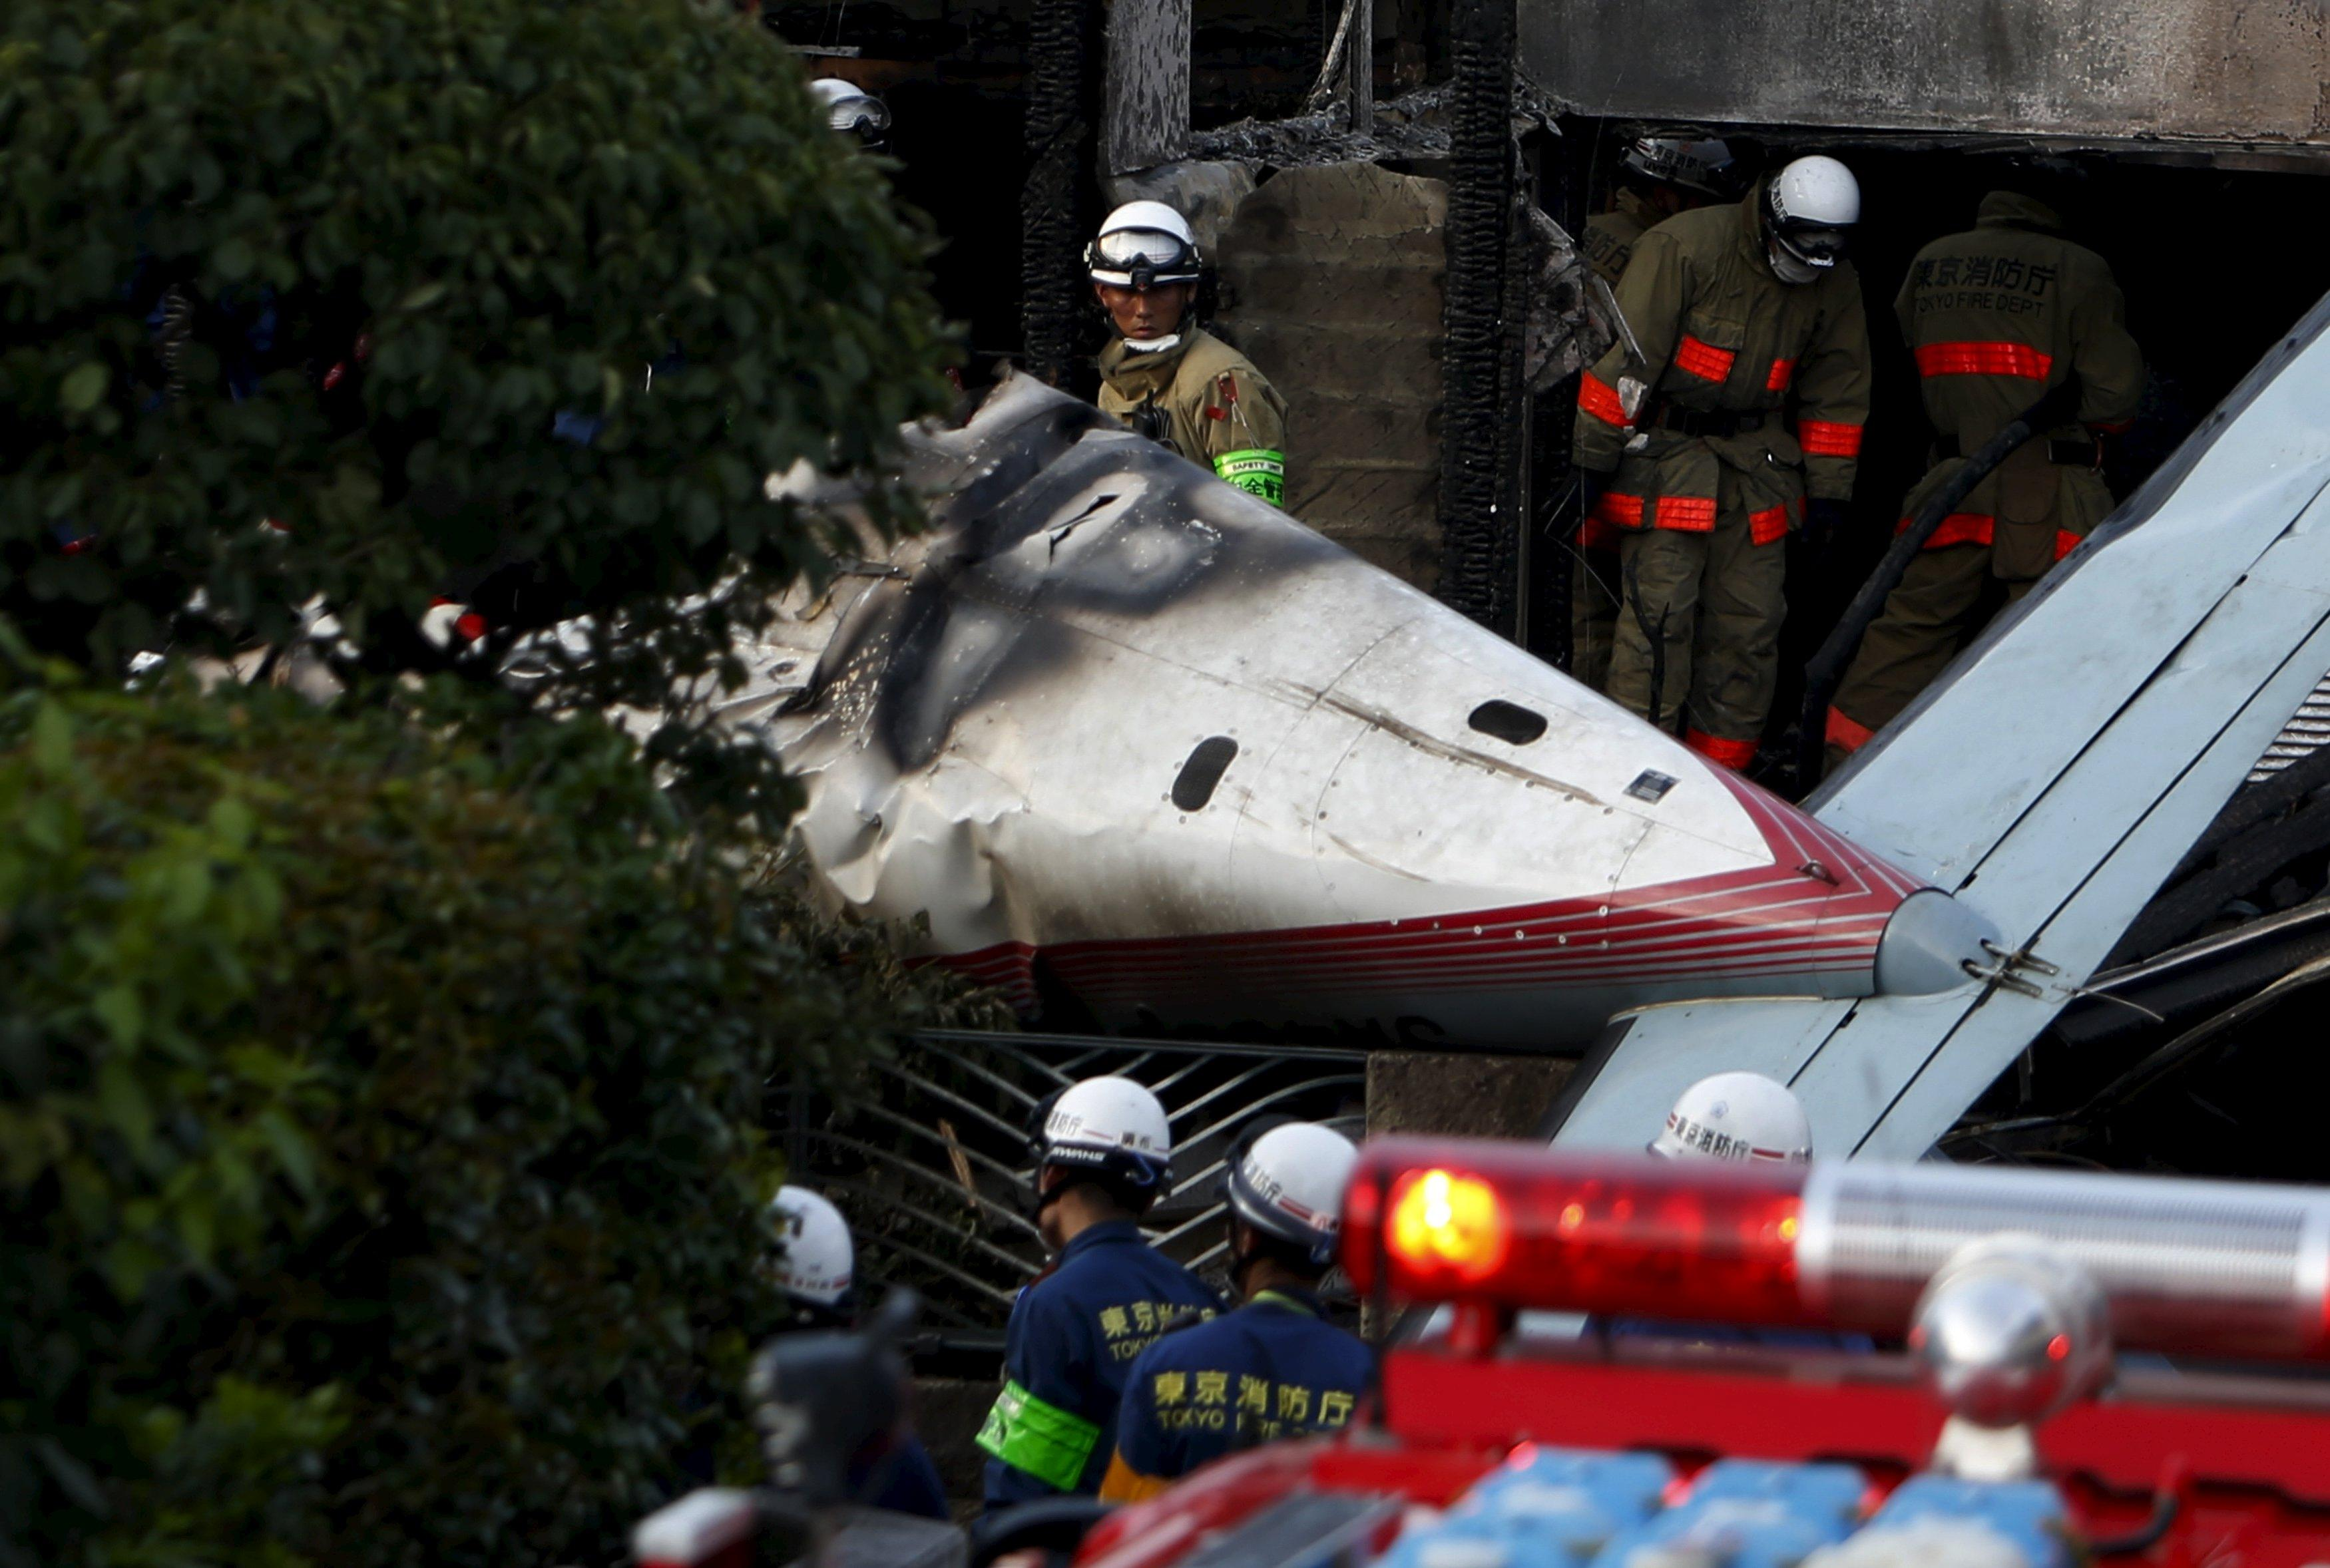 A firefighter looks at the tail section of a small airplane as he removes wreckage and debris at the site where the light plane went down in a residential area and burst into flames, in Chofu, outskirt of Tokyo, July 26, 2015. Three people were killed when a small airplane crashed into a residential area of the Japanese capital, Tokyo, on Sunday, public broadcaster NHK reported, setting fire to houses and cars. REUTERS/Yuya Shino